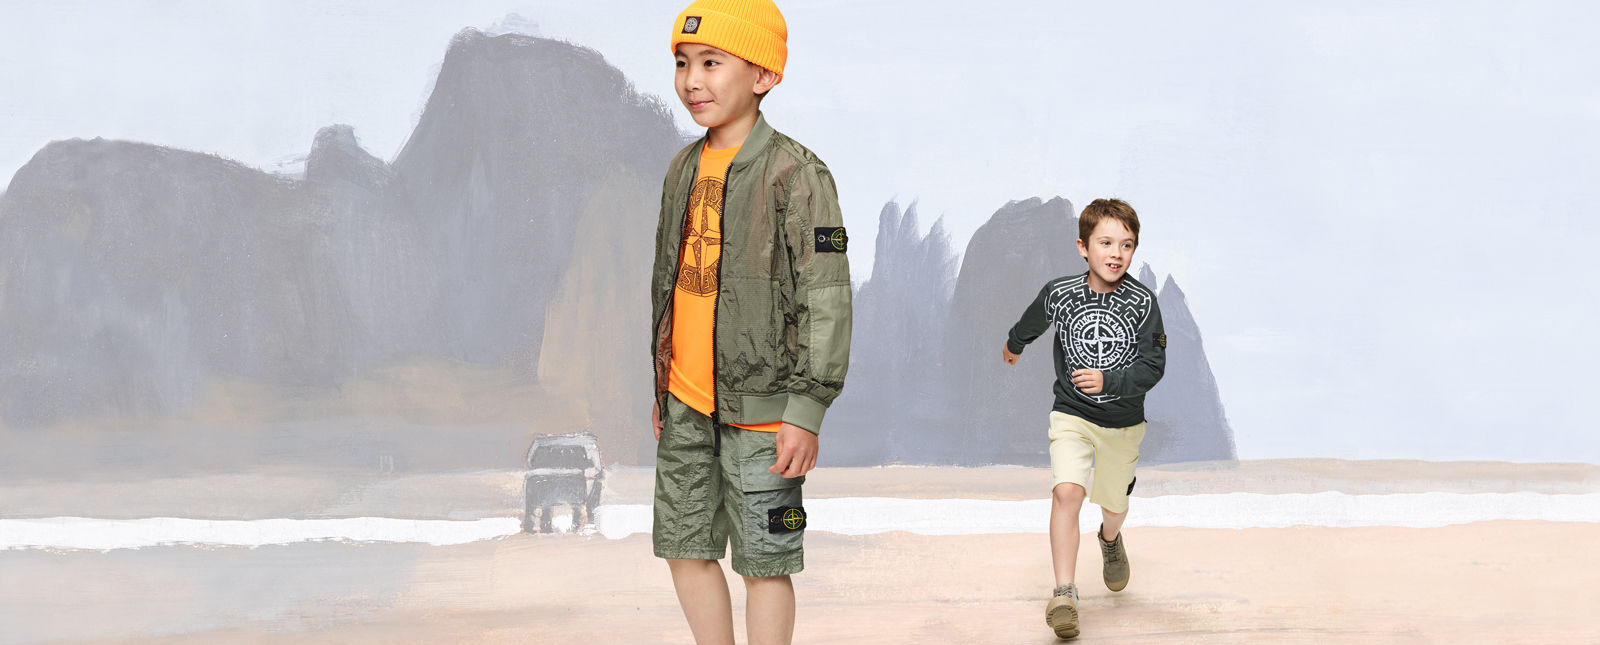 Two junior models, one wearing military green cargo shorts and jacket, a yellow top and beanie, the other one wearing cream shorts and a dark colored sweatshirt with the Stone compass rose across the chest.